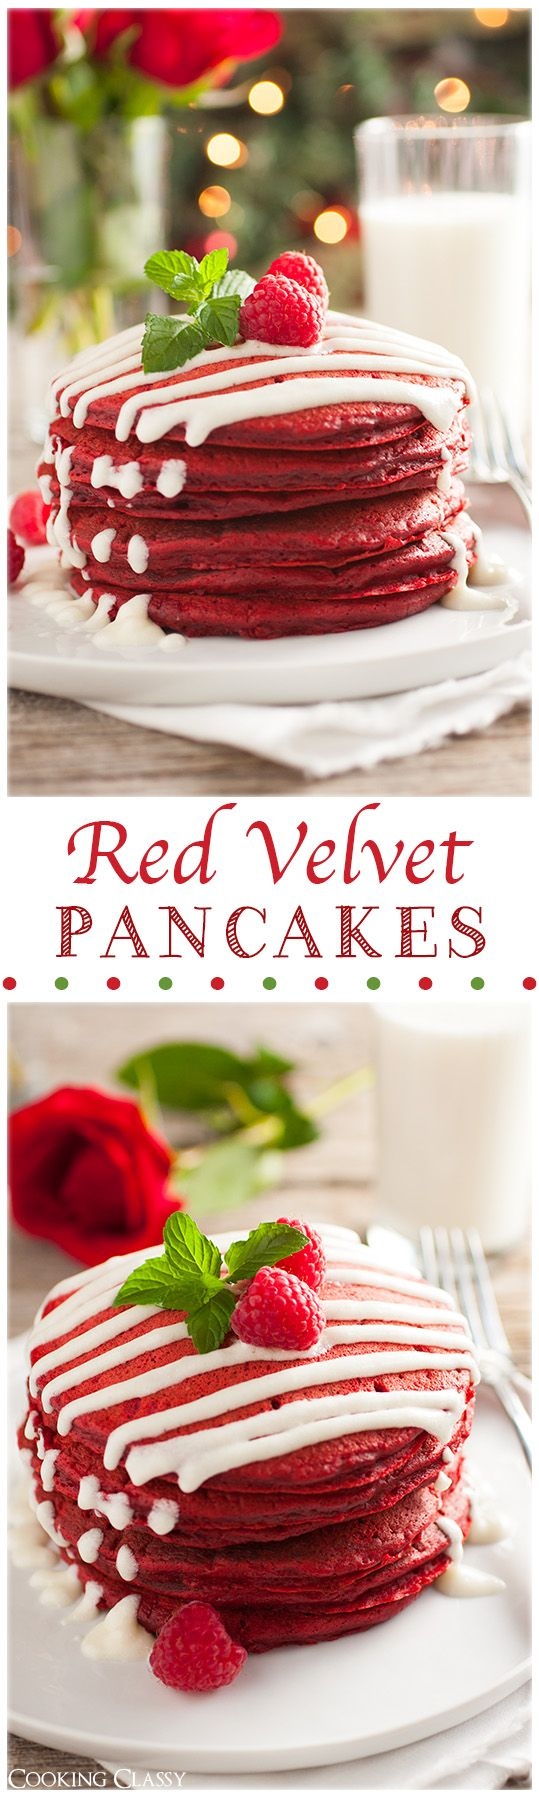 Red Velvet Pancakes with Cream Cheese Glaze #pancakes #breakfast #foodporn http://livedan330.com/2015/01/12/red-velvet-pancakes-cream-cheese-glaze/